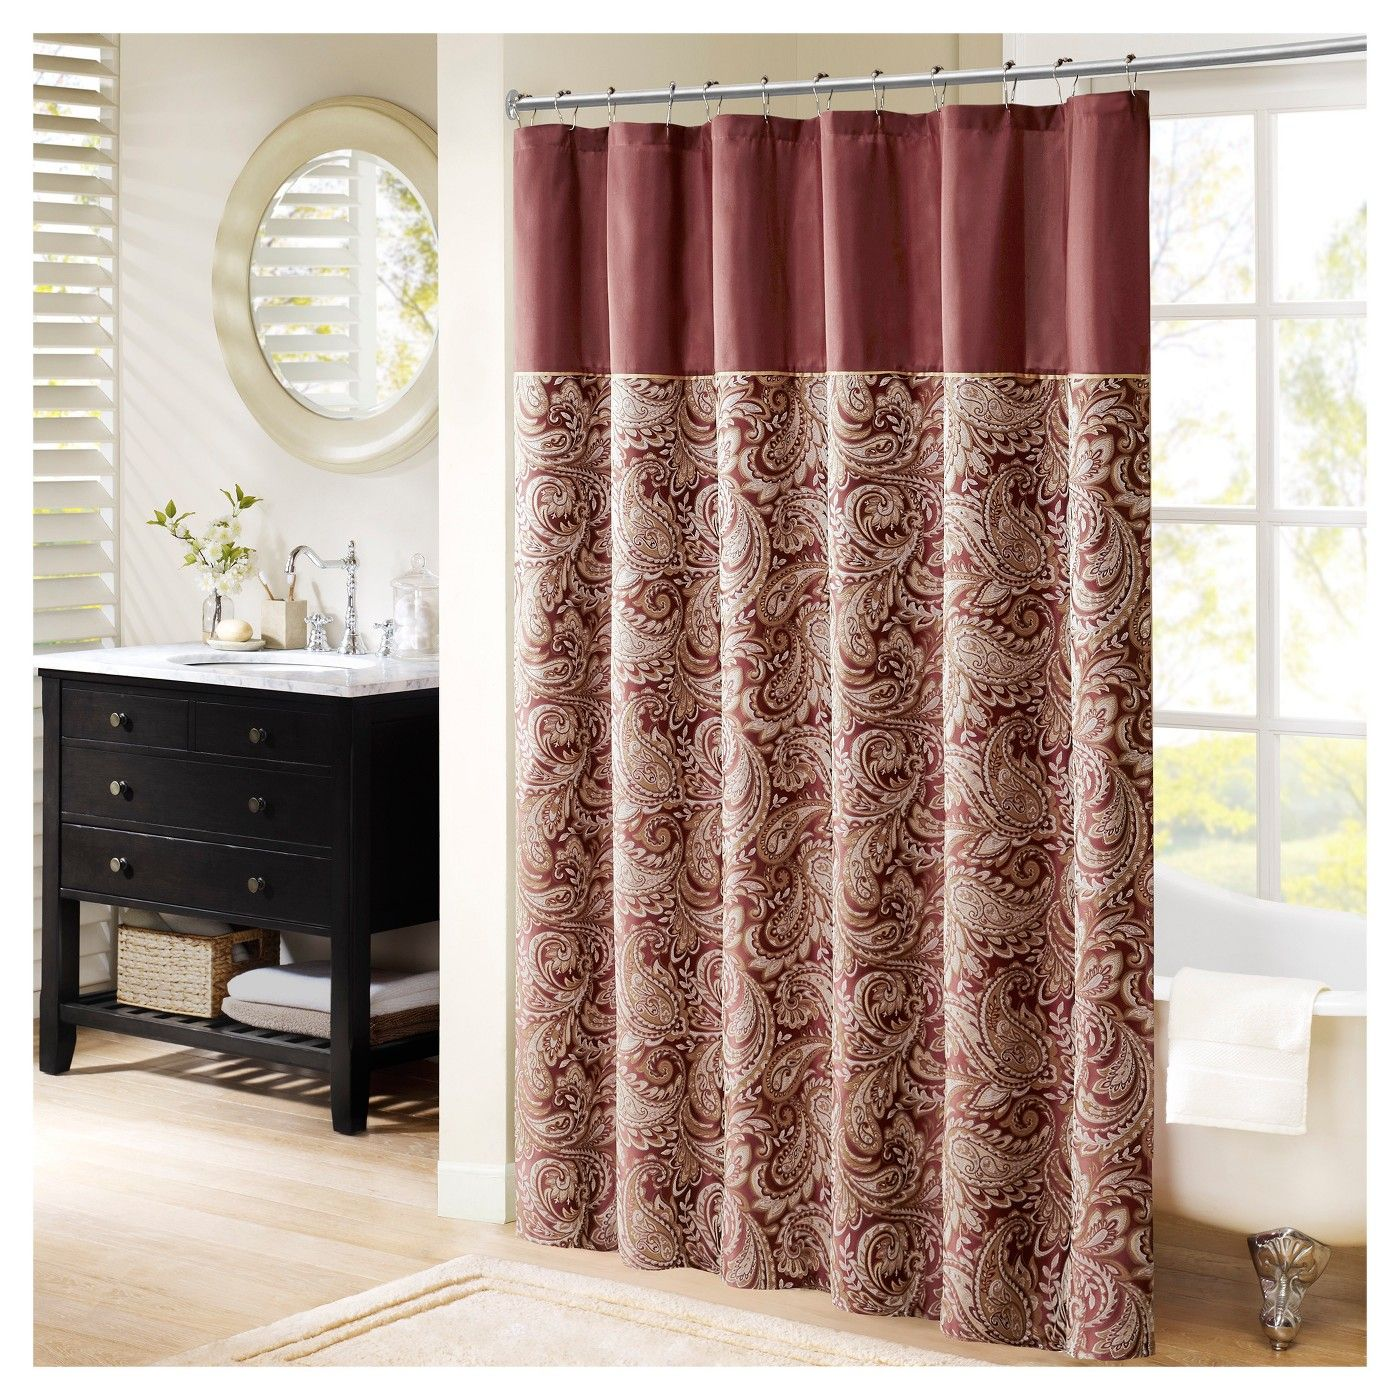 Wine Colored Shower Curtains.Jla Home Paisley Shower Curtain Burgundian Wine New House